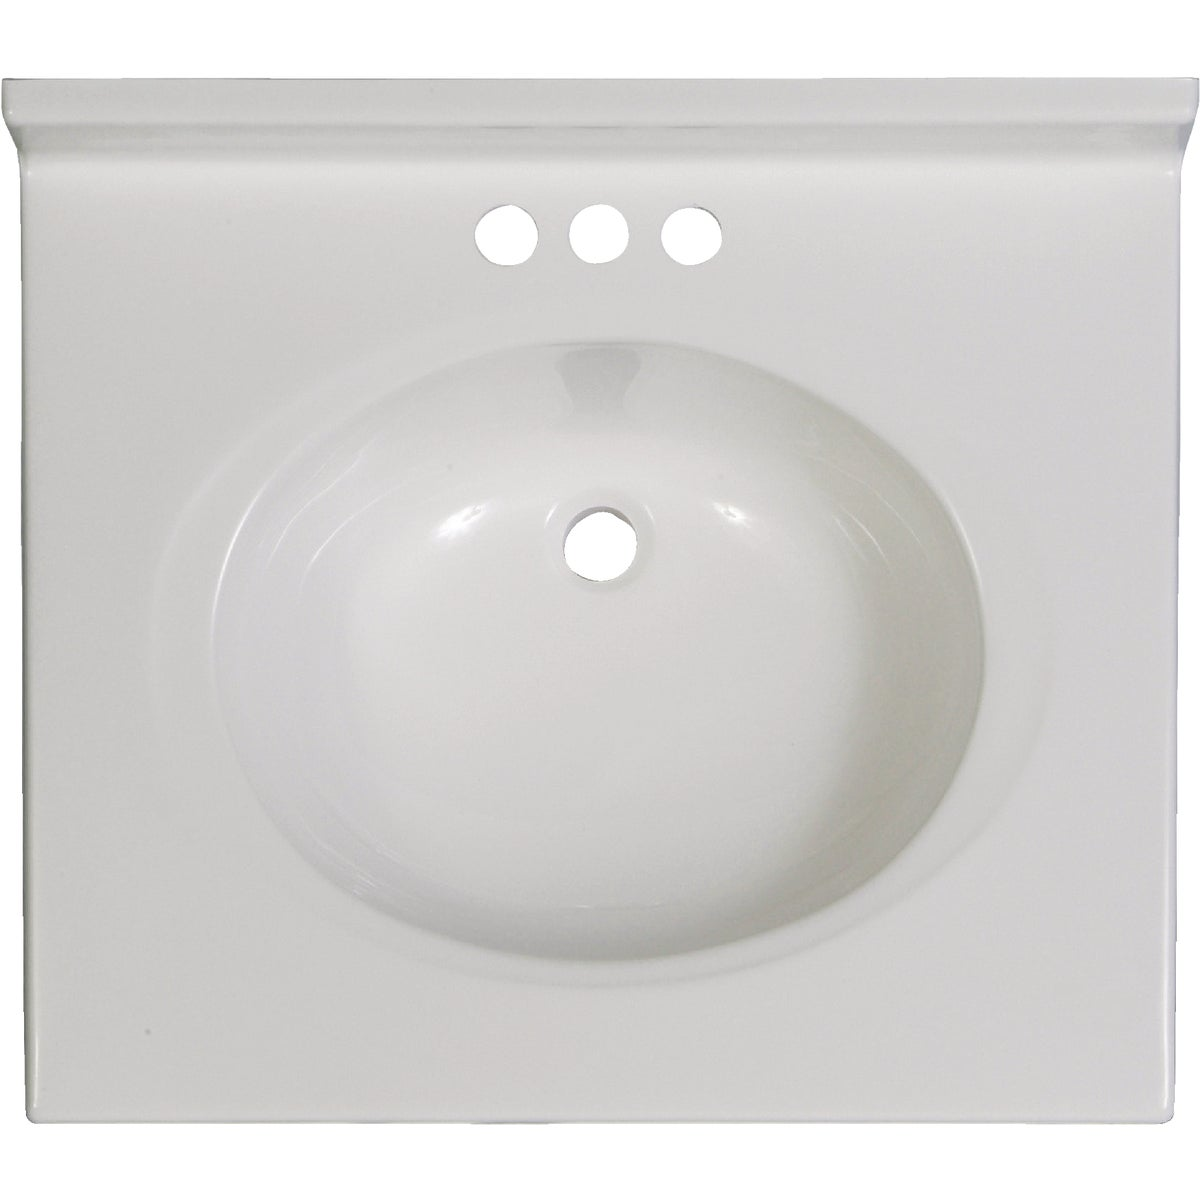 25X22 WHT VANITY TOP - VC2522SPW by Imperial Marble Corp